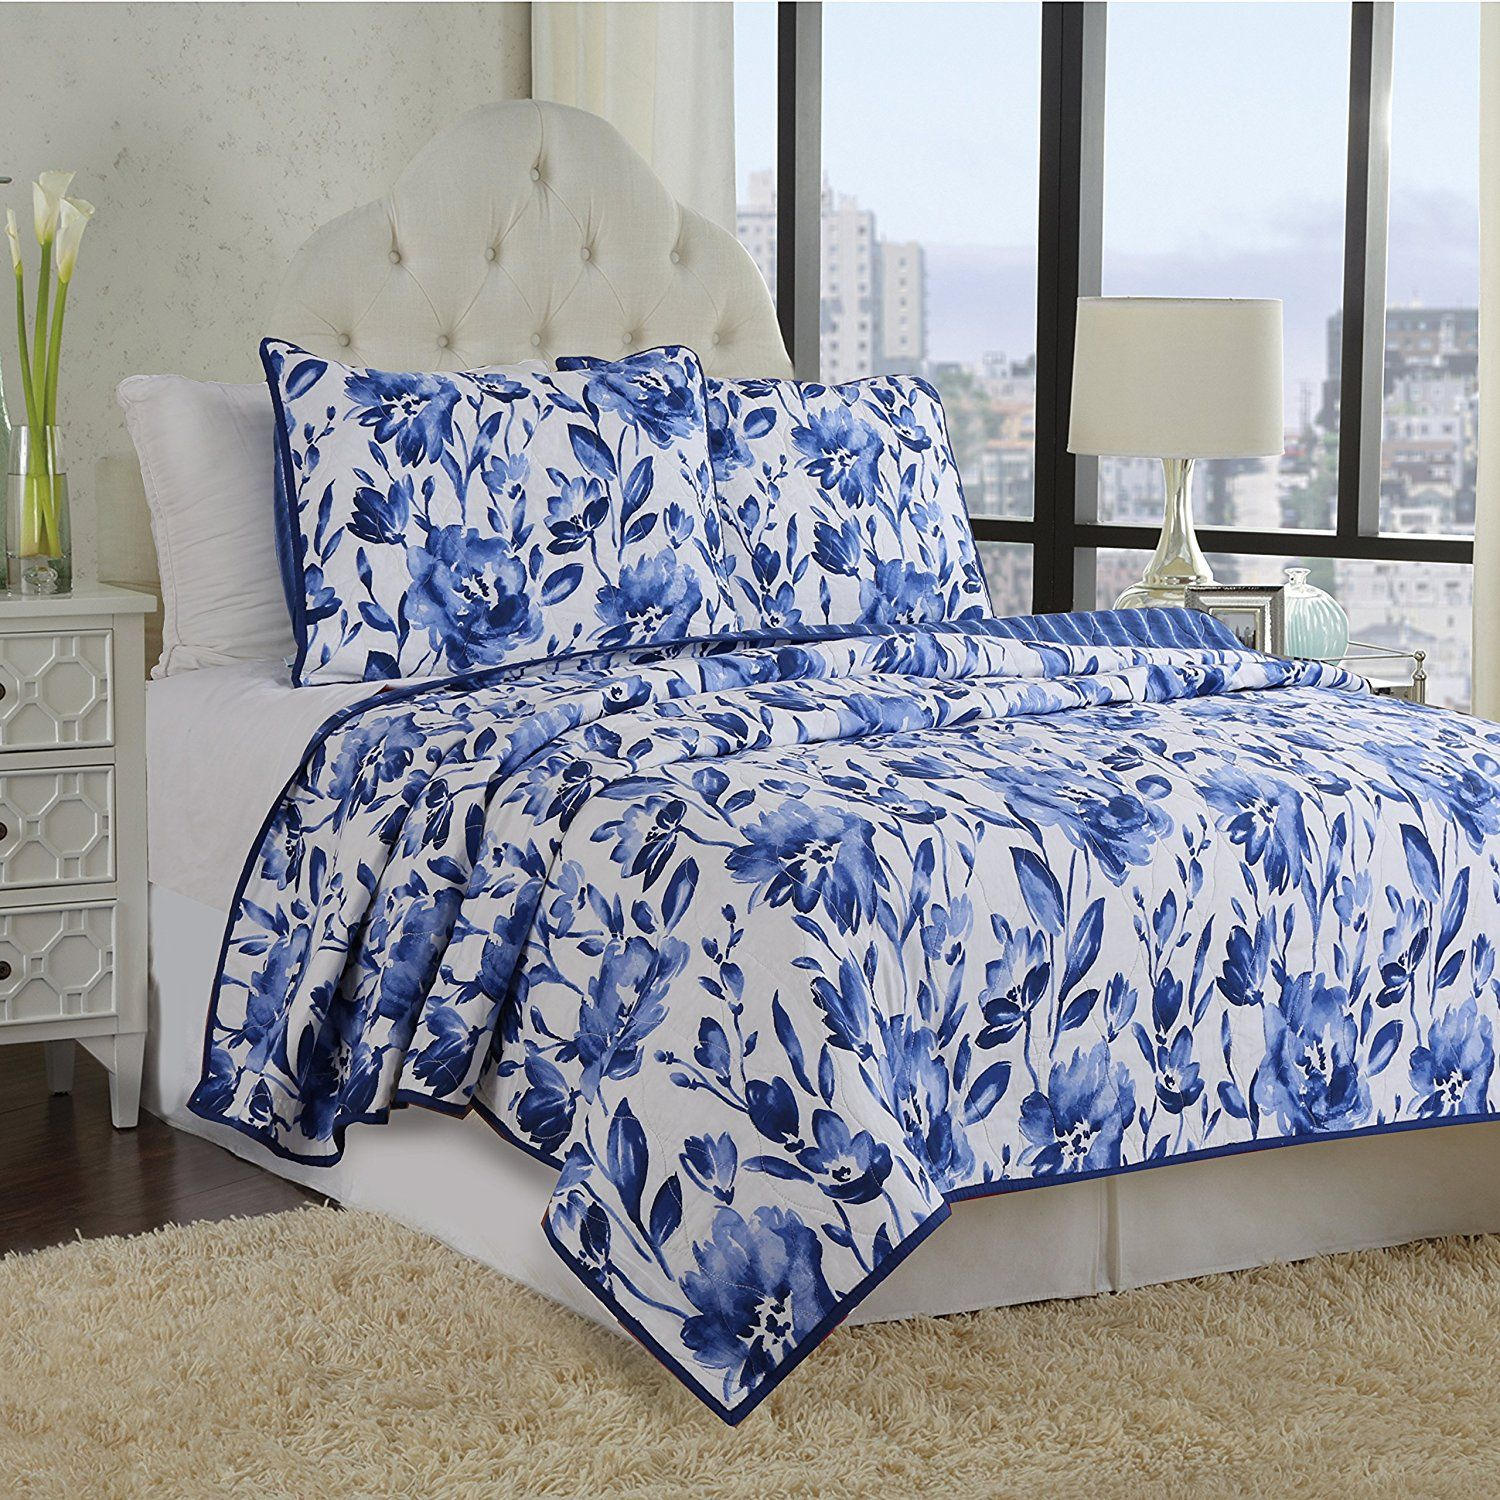 White and Blue Floral Bedding and other Beautiful Print